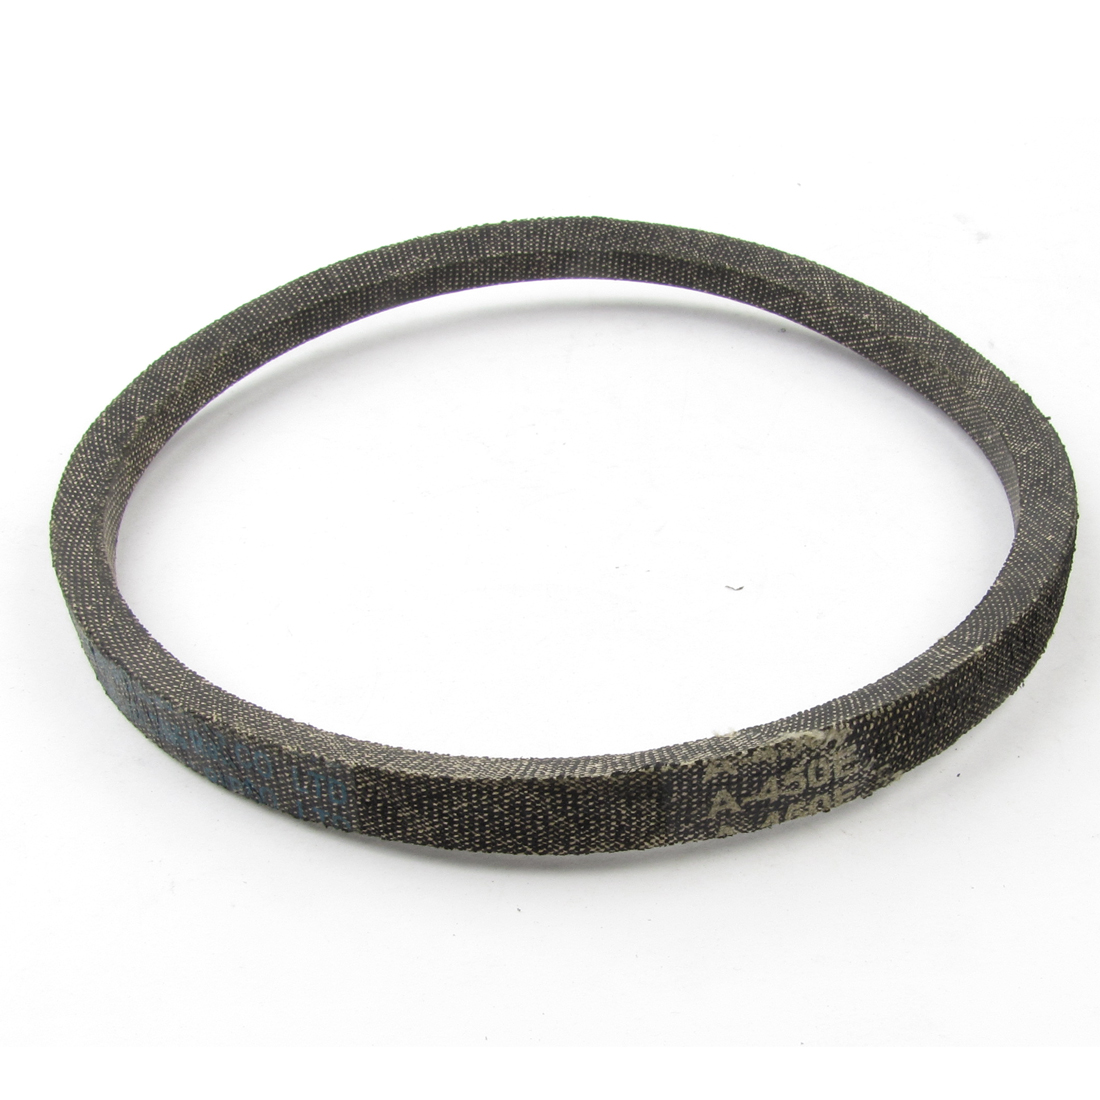 45cm Inner Girth Rubber Transmission Belt A-450E for Washing Machine